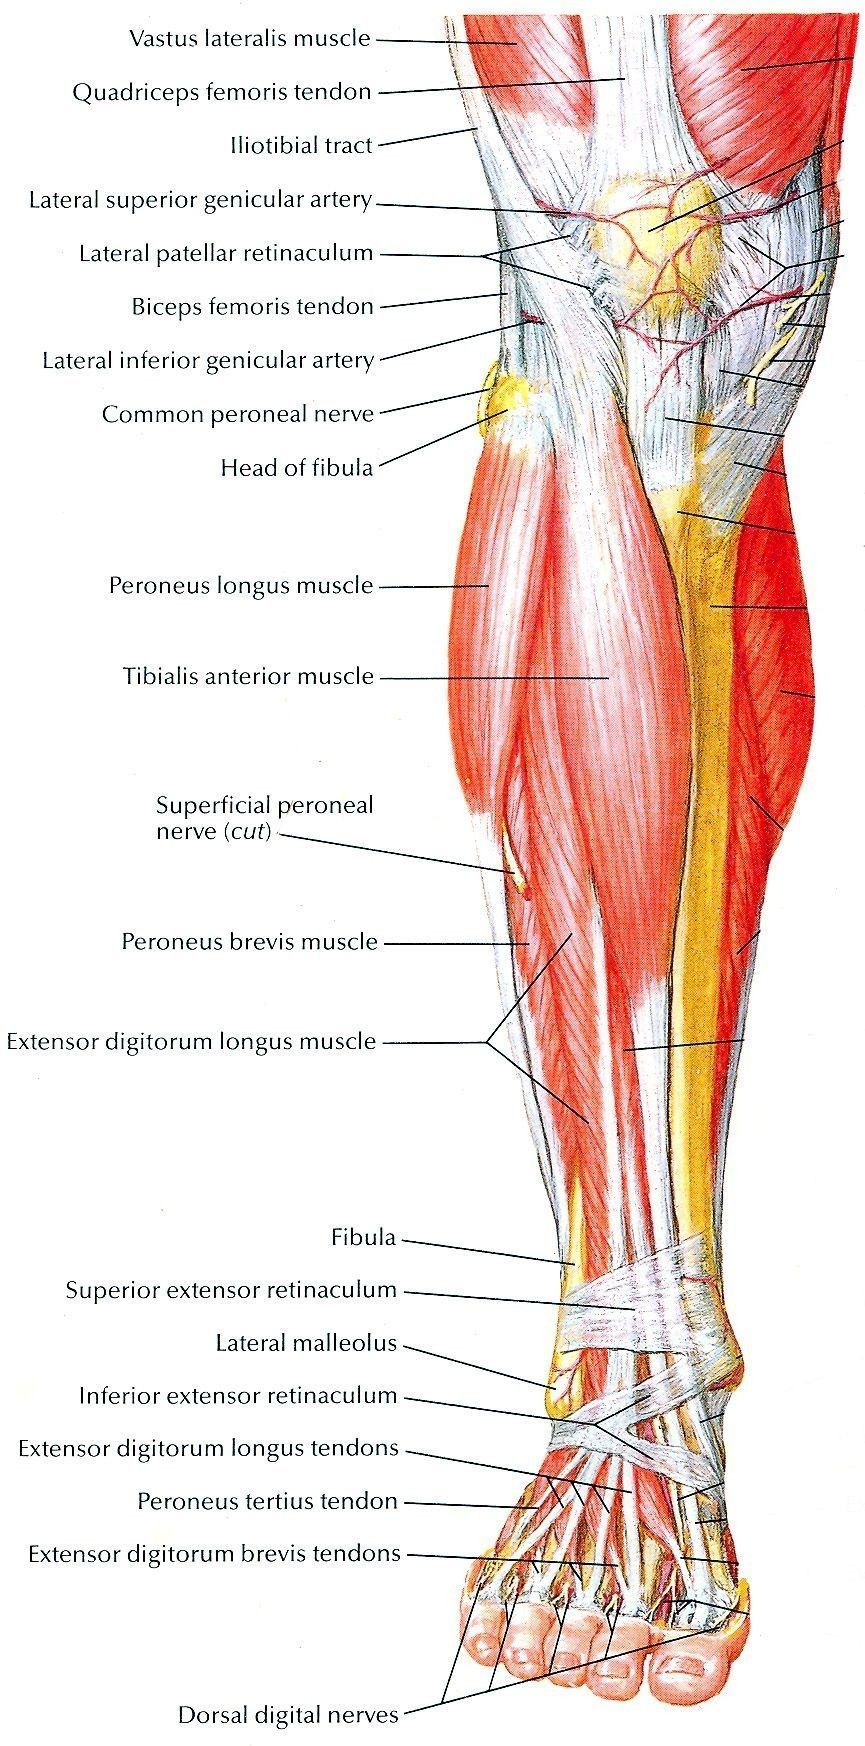 MuscleAnatomy Visual muscular locations allows massage therapist and ...